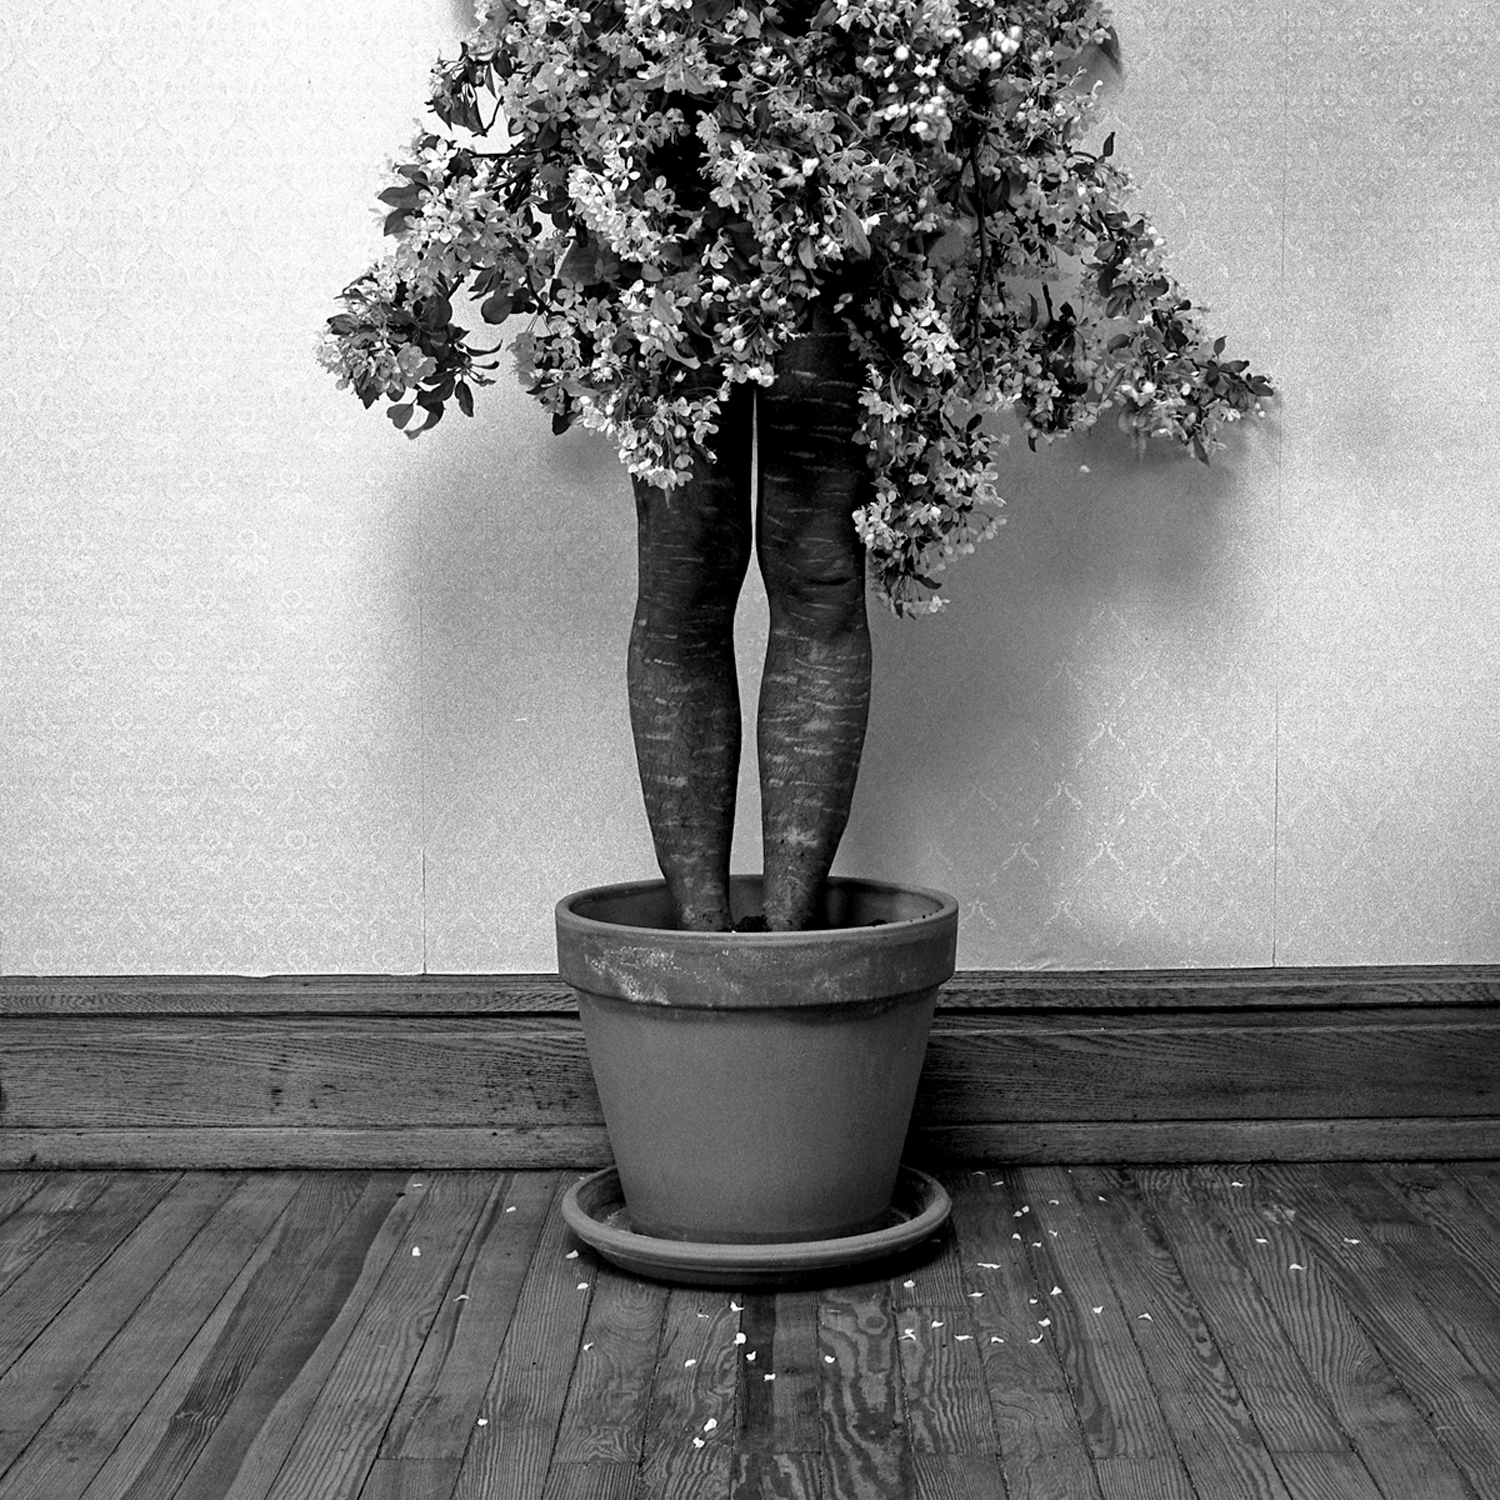 Potted, 2005, archival pigment print on paper